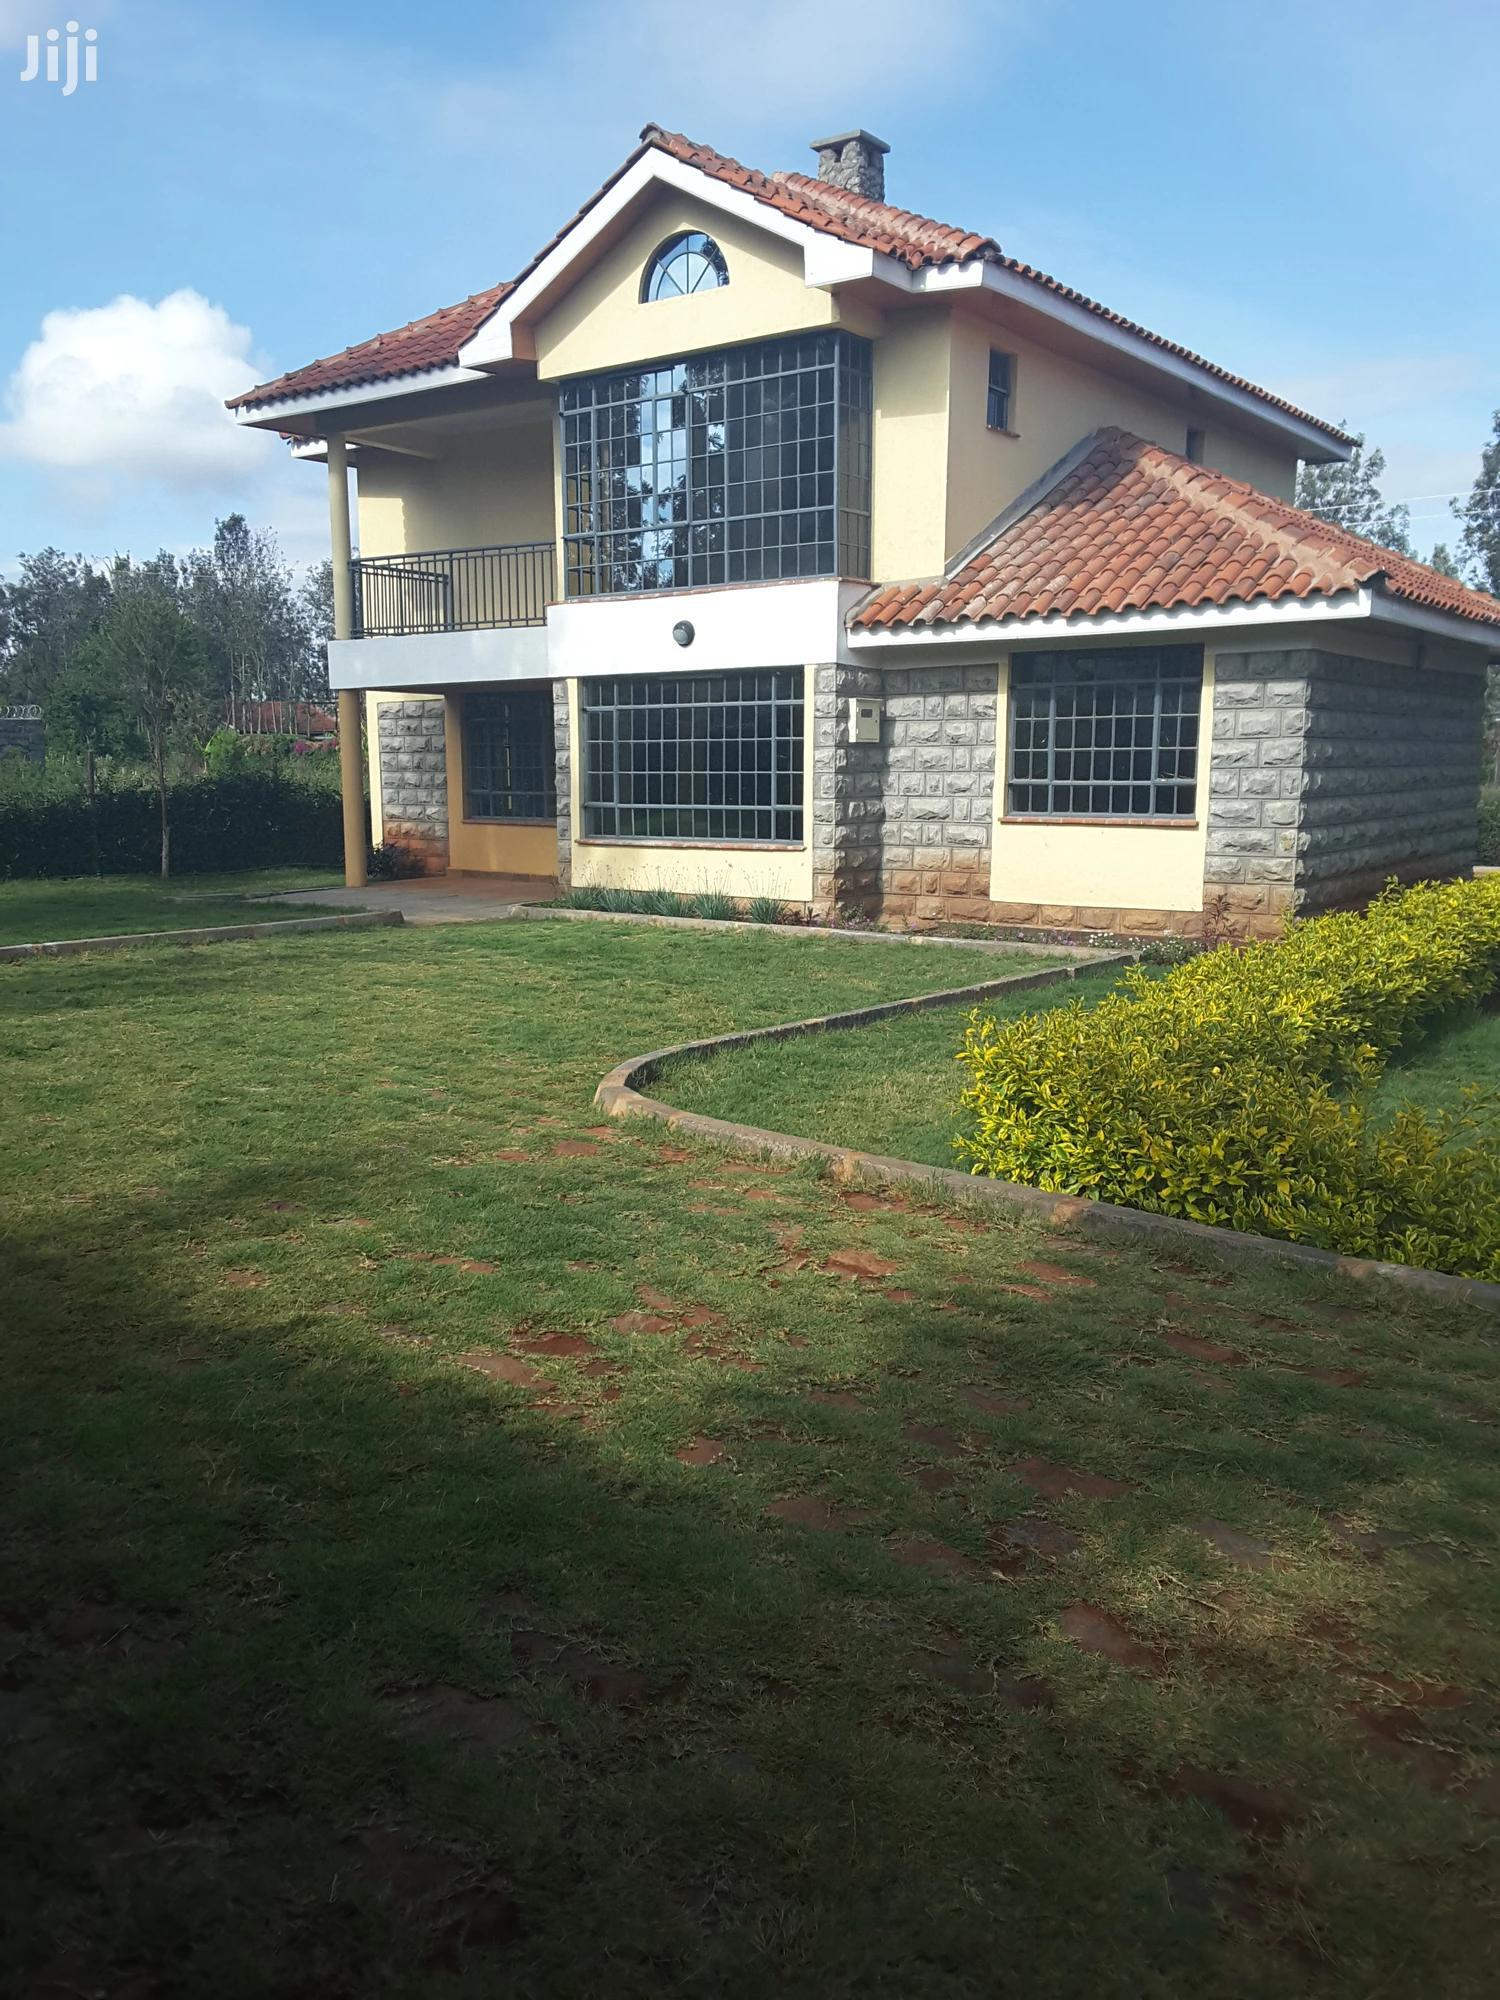 Lovely 4 BR Houses In Ongata Rongai